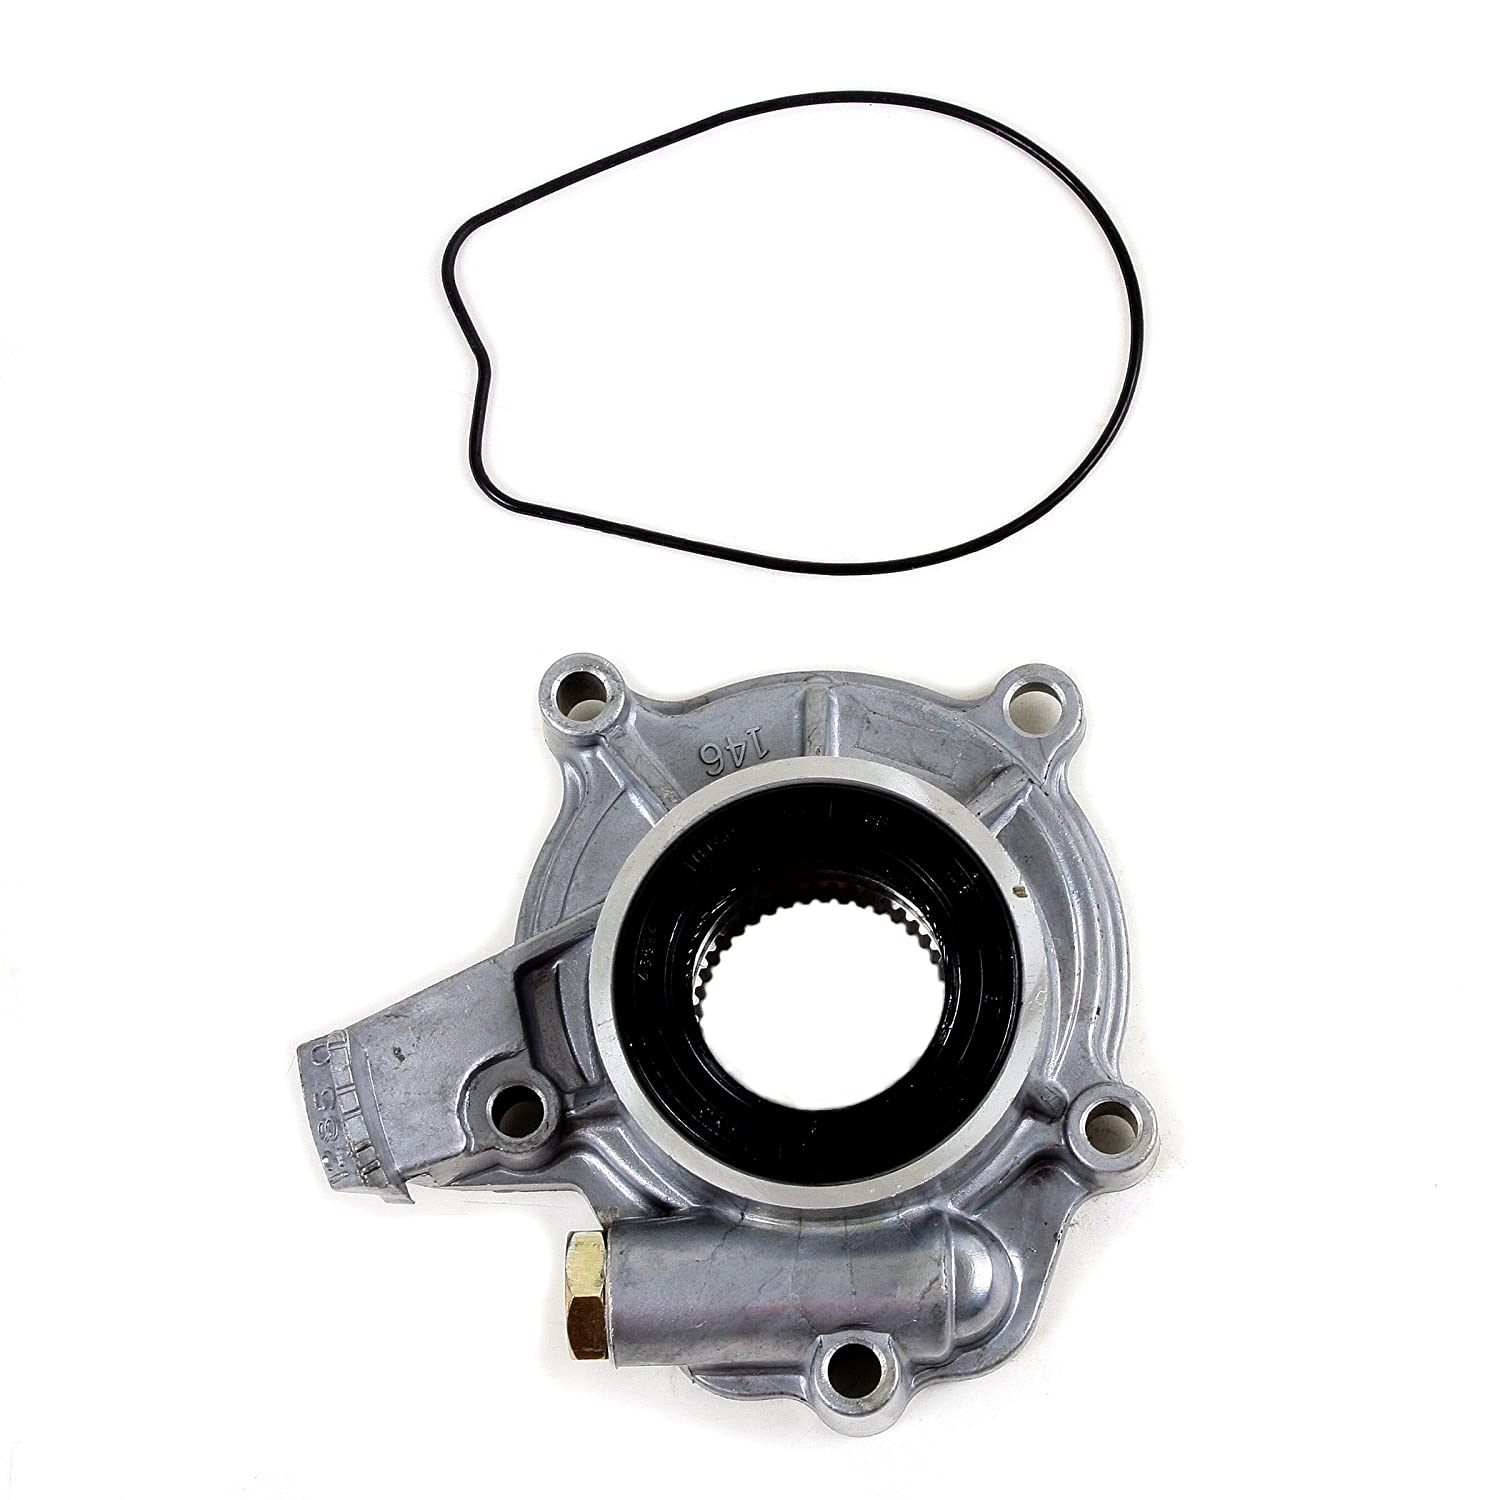 with Timing Cover 2 Heavy Duty Metal Guide Rails /& Graphite Head Gasket // 85-95 Toyota 2.4L 4Runner Pickup Celica SOHC Engine 22RE 22REC NEW TK10120TCWPOPHGG Timing Chain Kit Water Pump